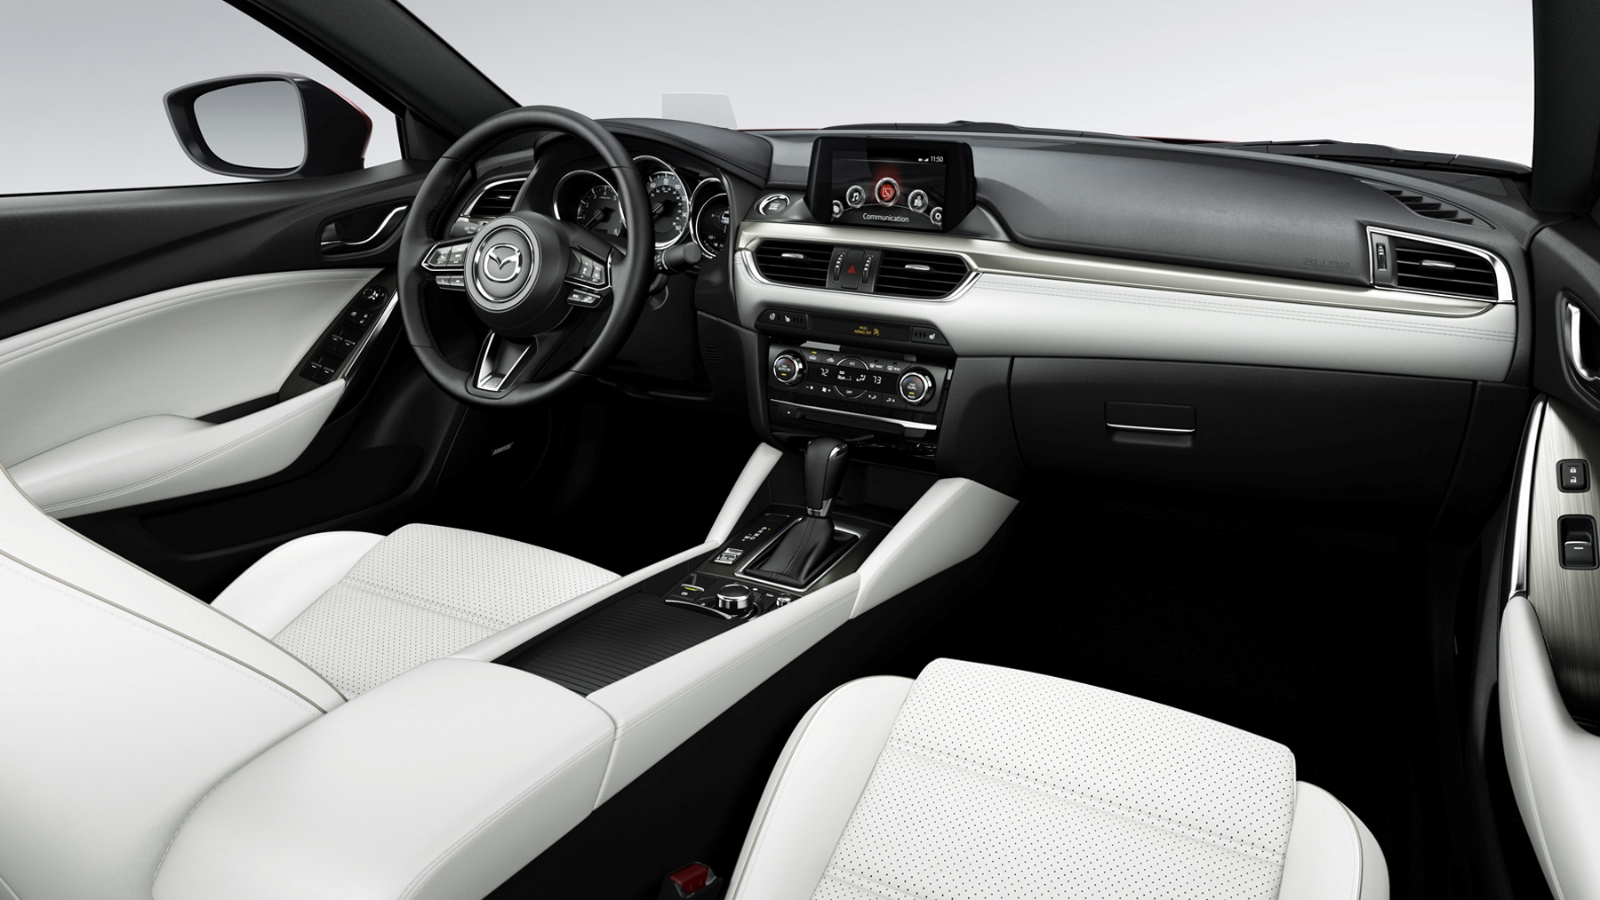 Come See The Mazda6 Today! We Have All Trims And Colors Available For You  To View. Take A Seat In One. Our Sales Team Can Get You Set Up With A Test  Drive, ...